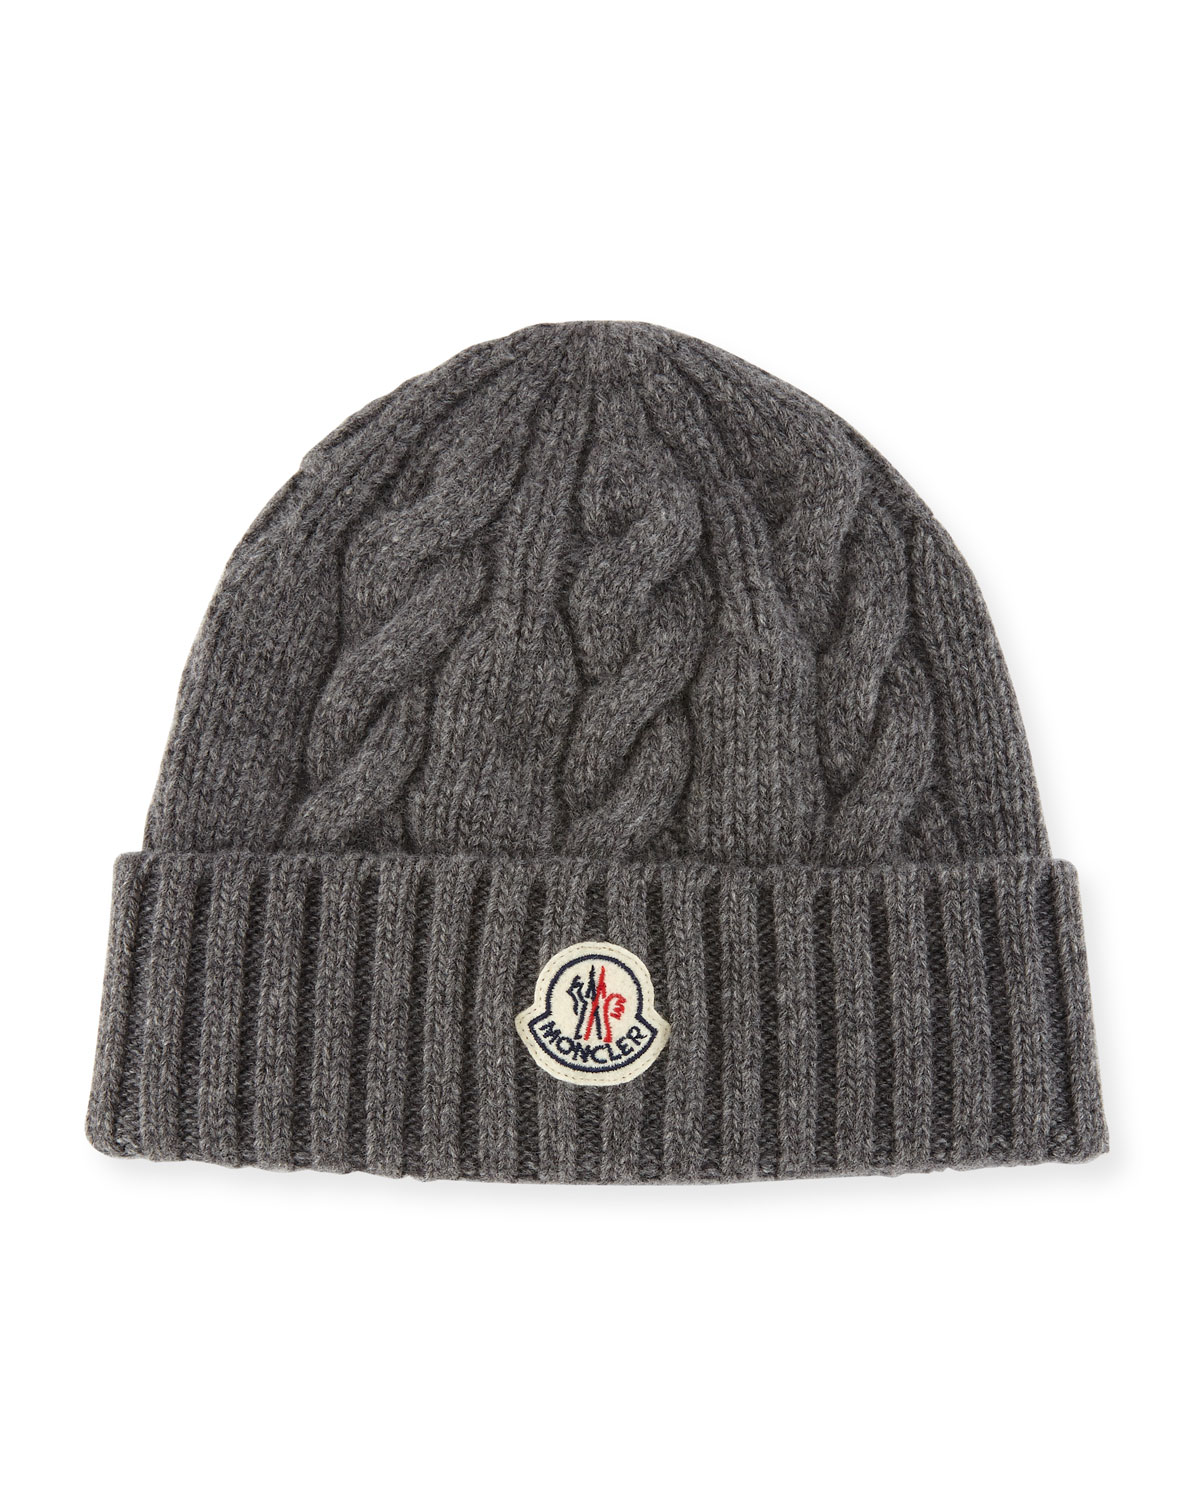 Moncler Men s Cable-Knit Wool Beanie Hat  e11e30f2adb